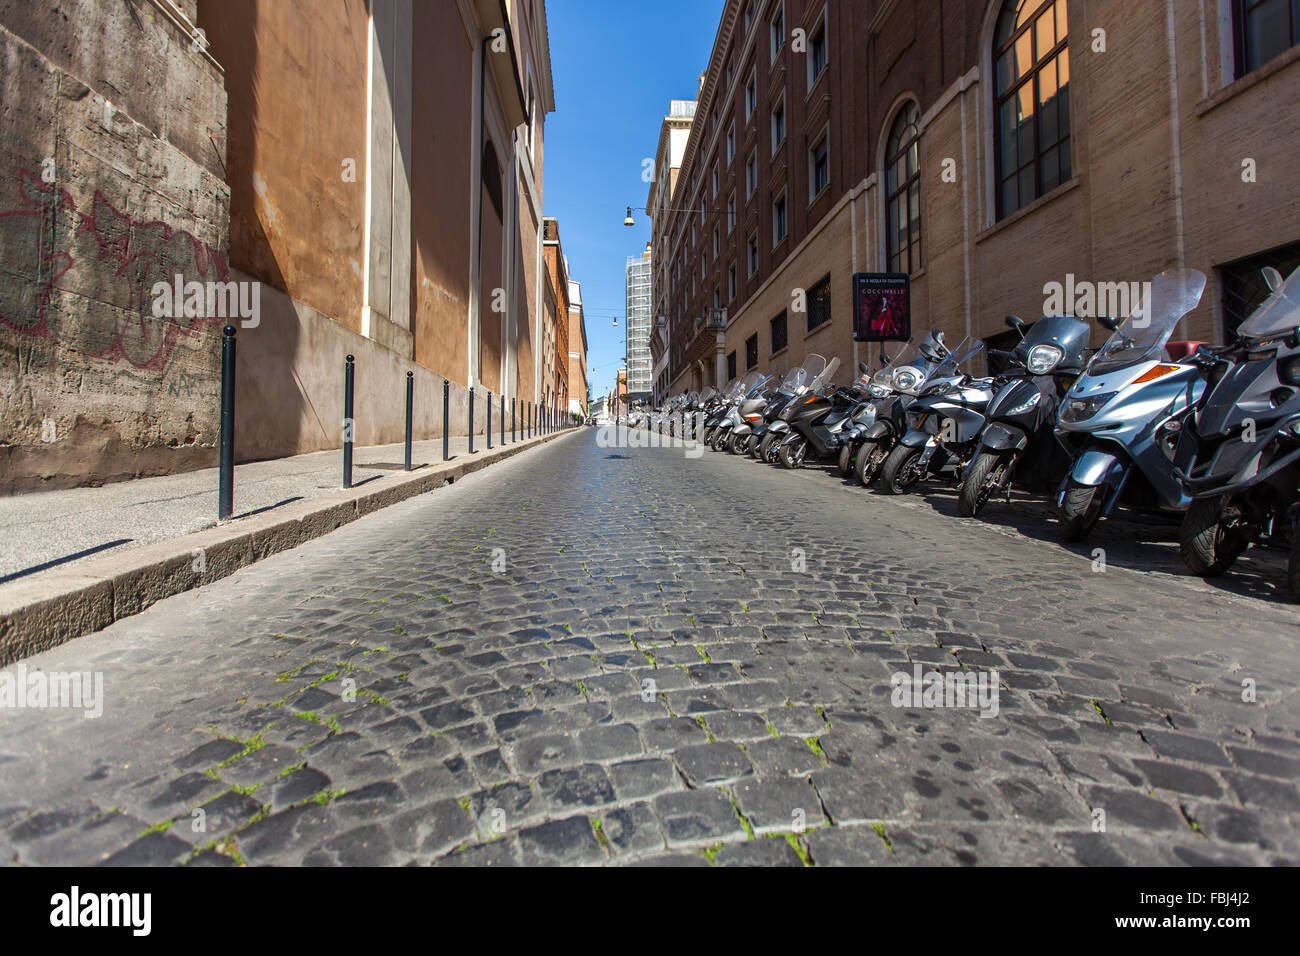 Tourism and sightseeing, narrow empty street in Rome, Italy in afternoon. Parked bikes and scooters on the roadside - Stock Image